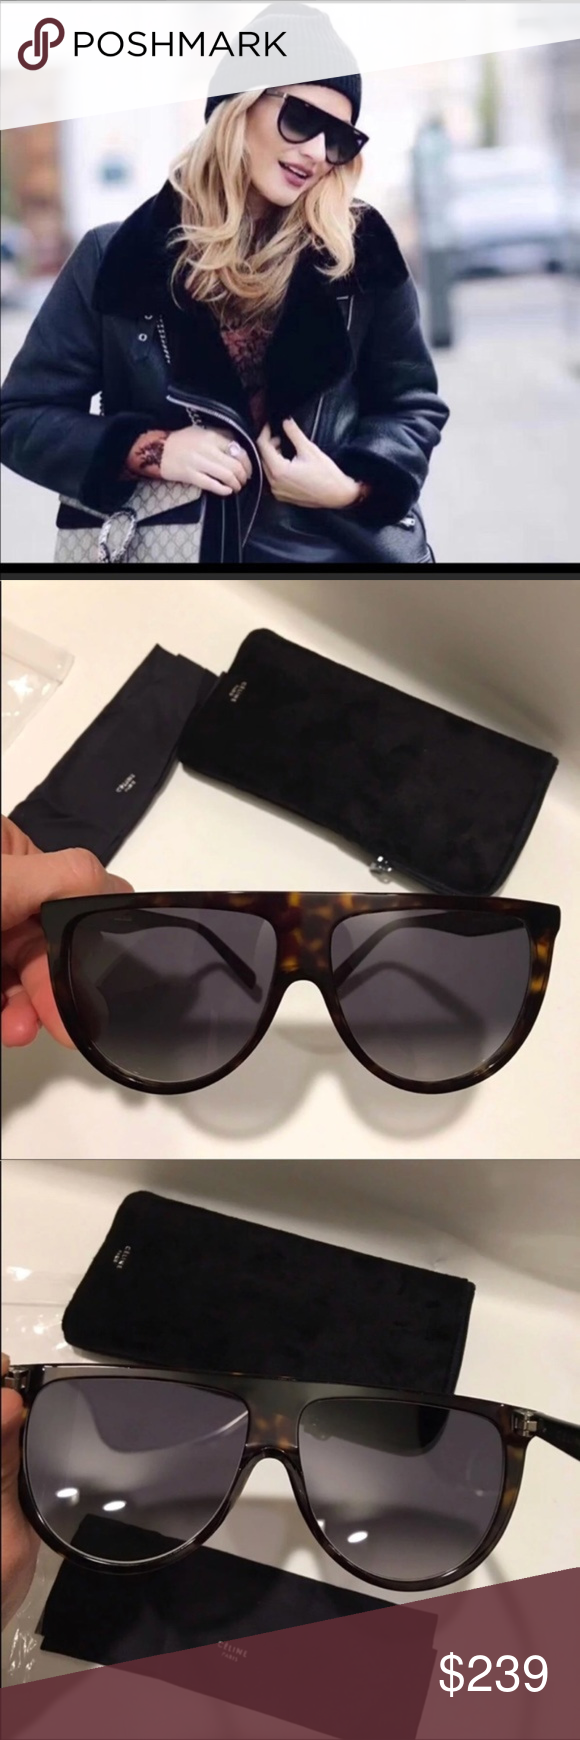 84500806c5cb Celine Thin Shadow Sunglasses Celine 41435 s Thin shadow dark havana  sunglasses 100% new and authentic. Includes original Celine case and Celine  card.